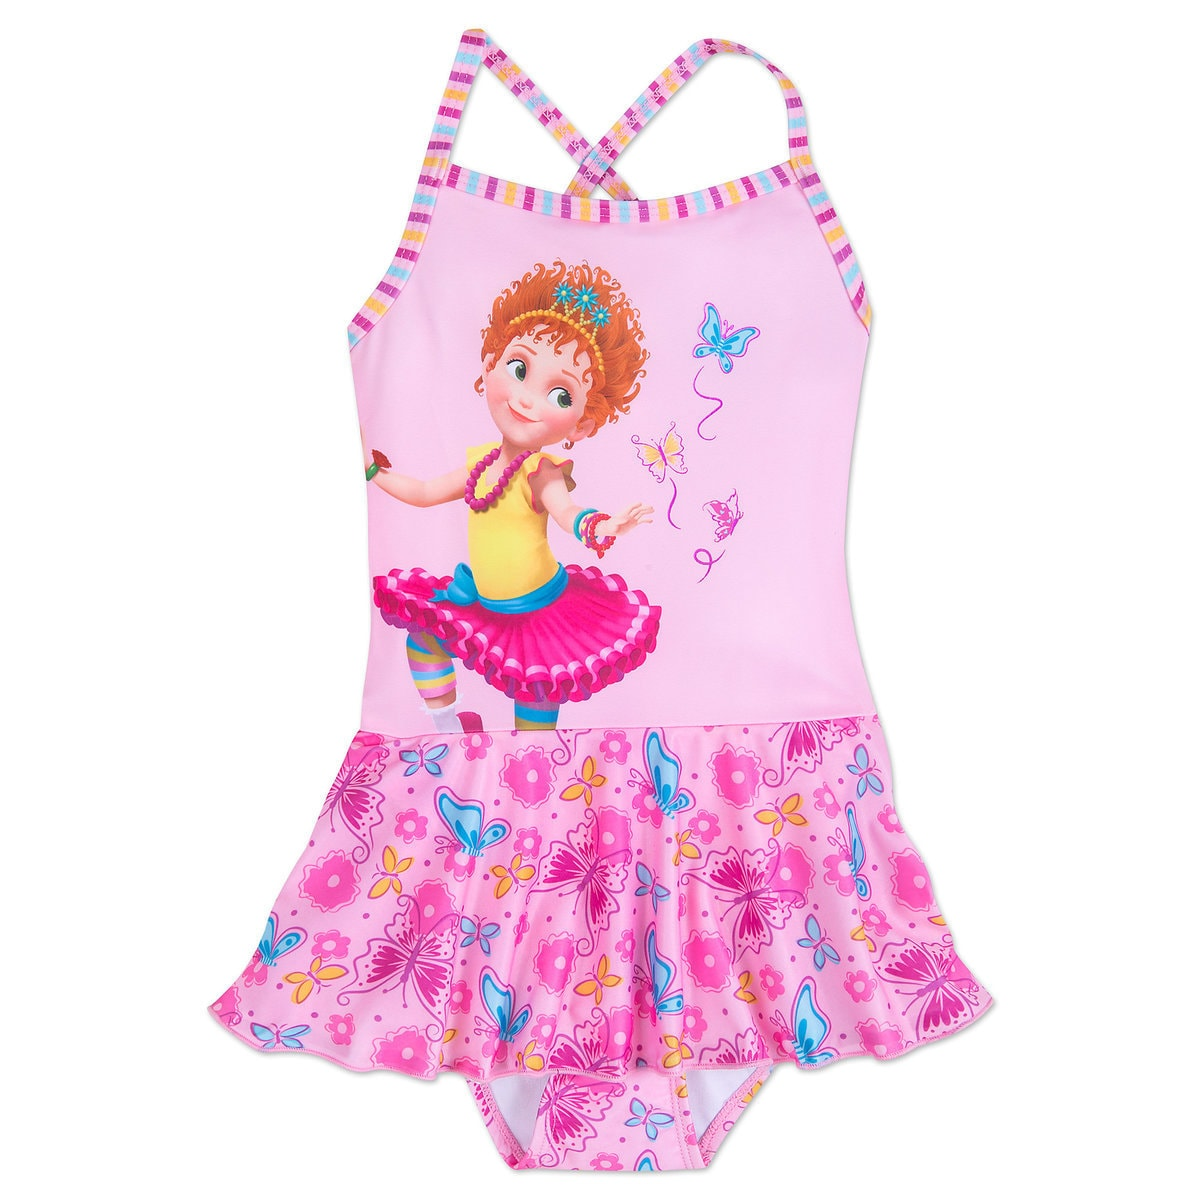 ef1df2f9a666 Product Image of Fancy Nancy Swimsuit for Girls # 1